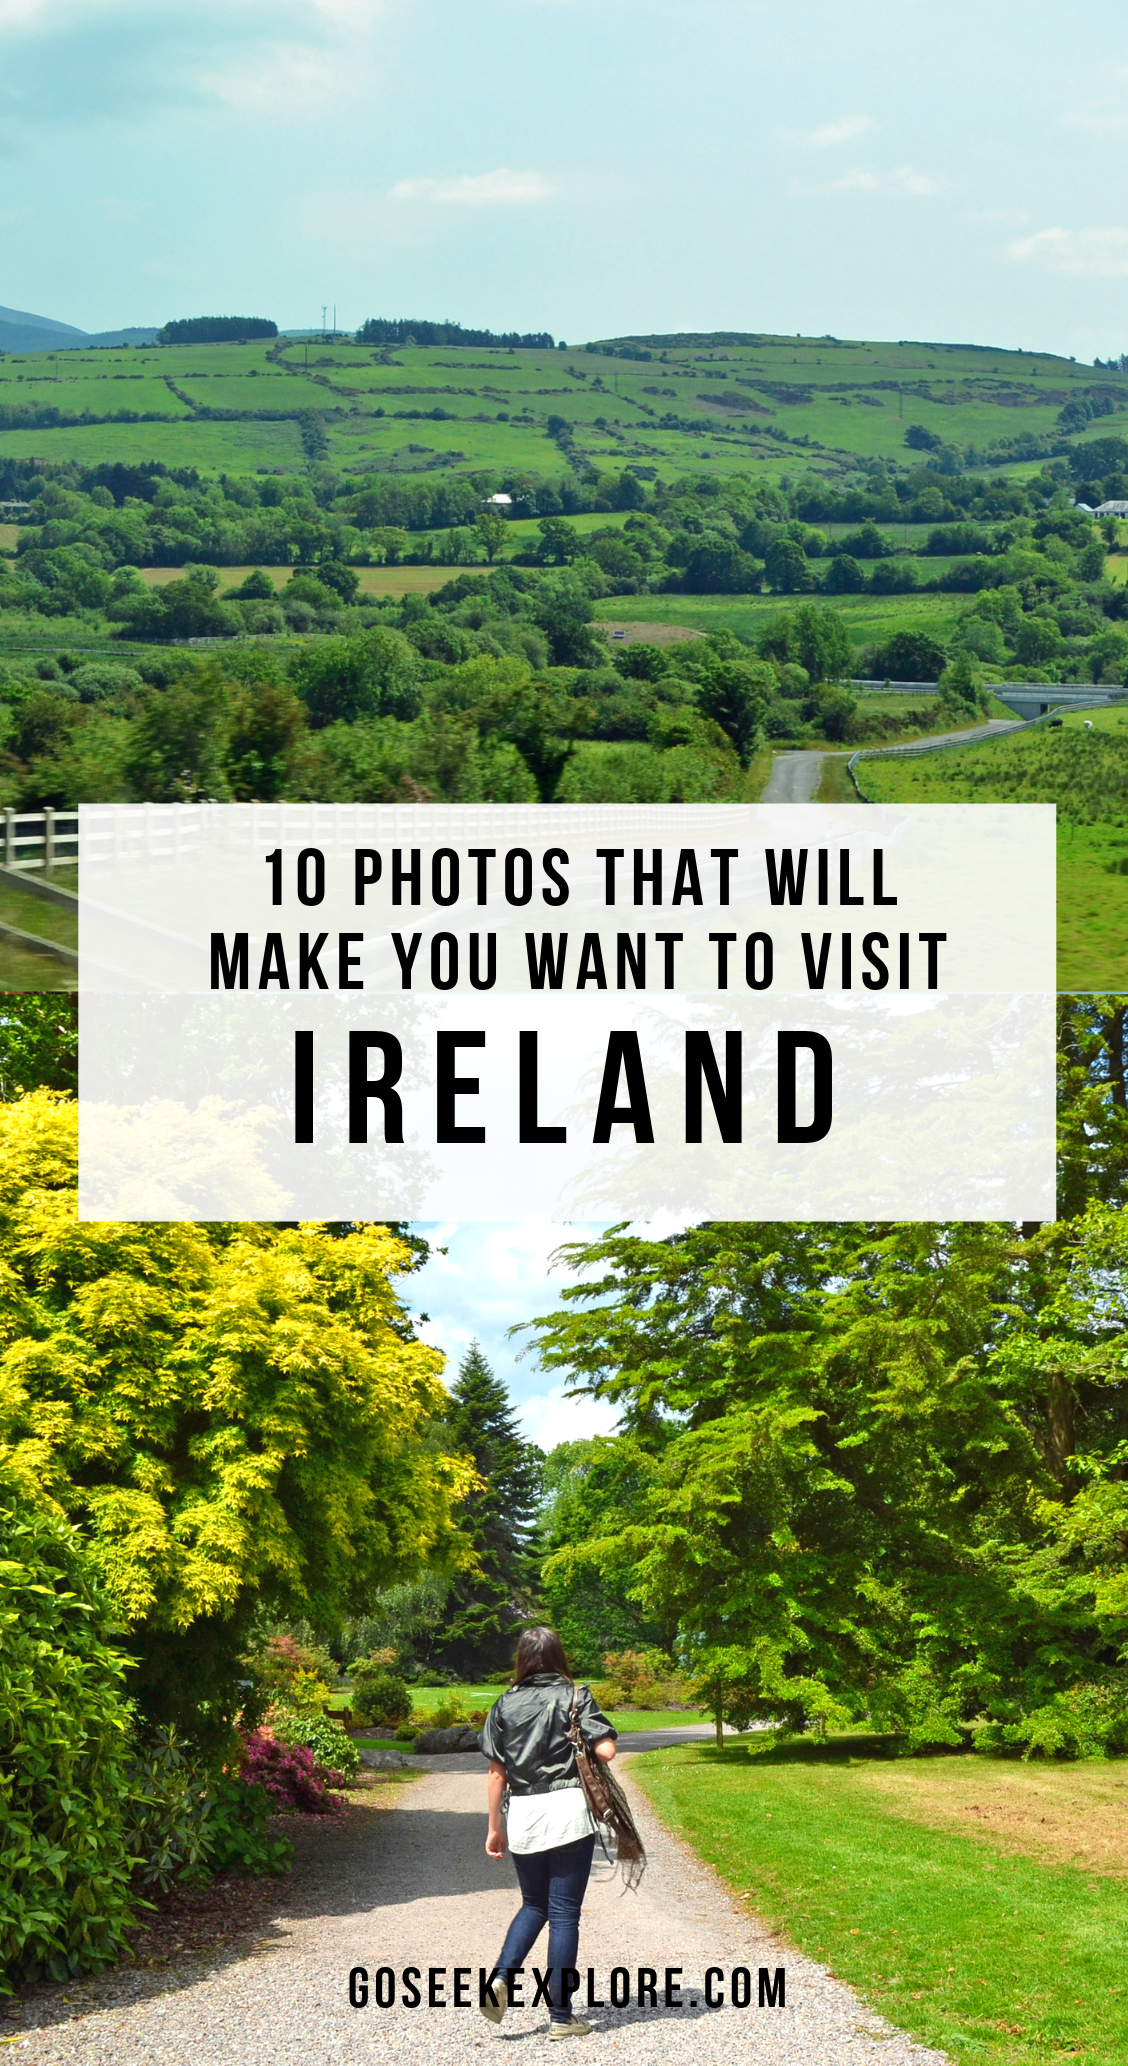 10 Photos that will make you want to visit Ireland, one of the most beautiful countries in Europe! This photo diary takes you to Cork, Dublin, and the Irish countryside. GoSeekExplore.com #ireland #irish #dublin #cork